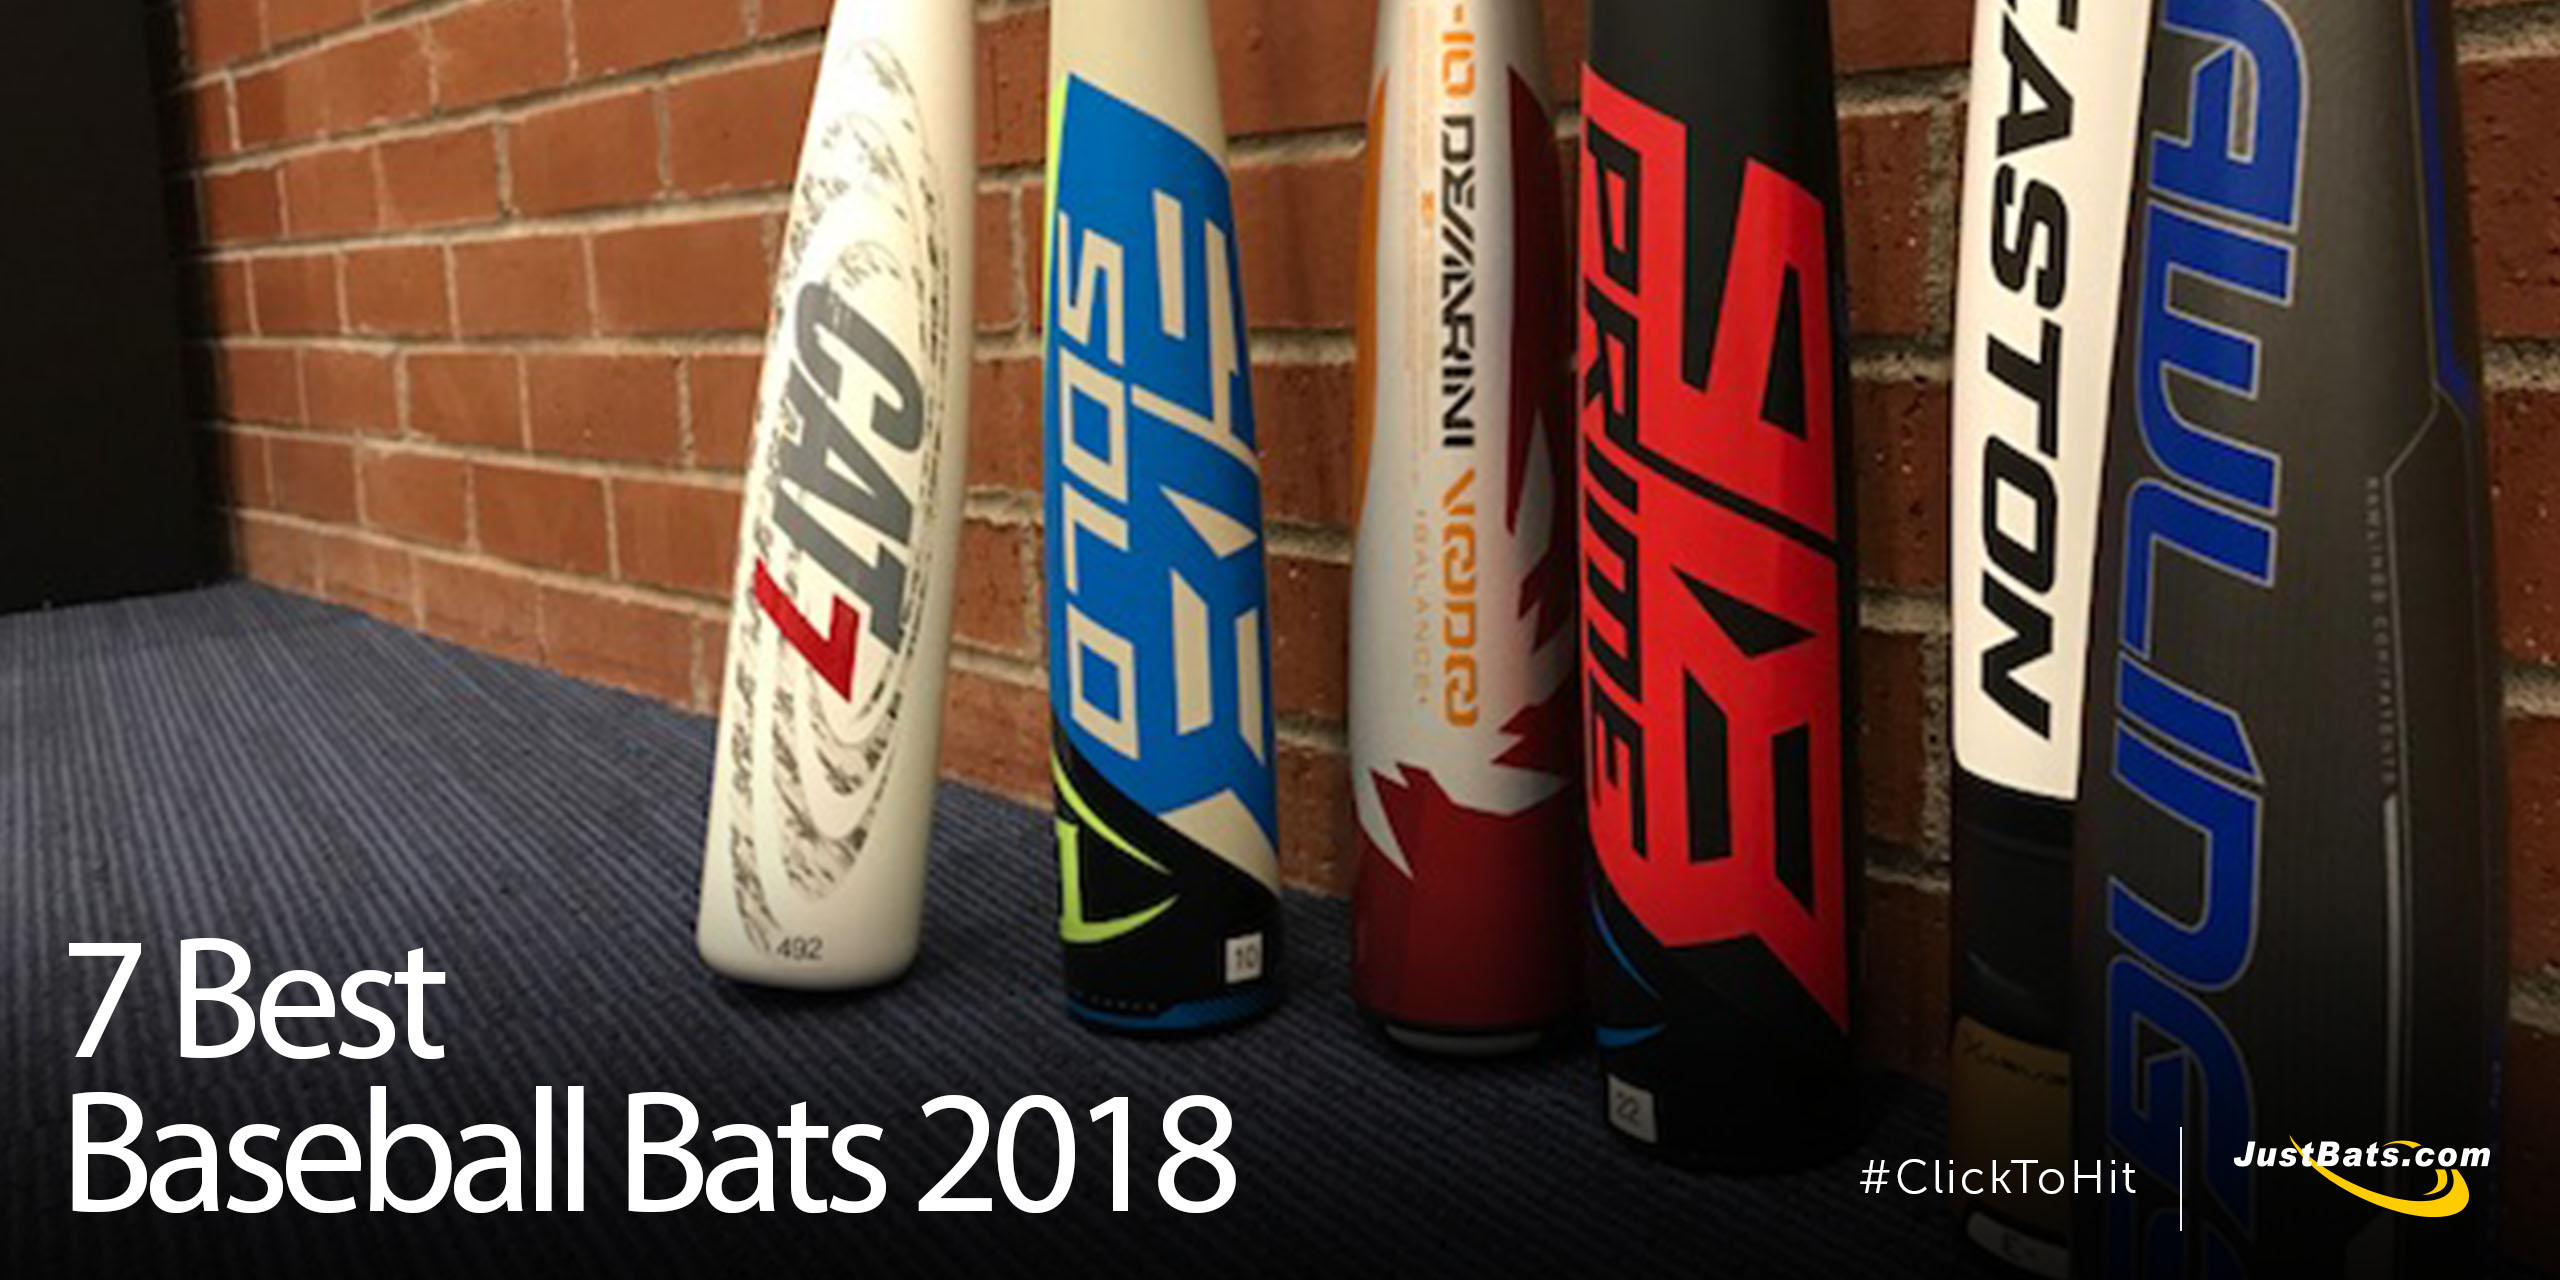 7 Best 2018 Baseball Bats - Blog